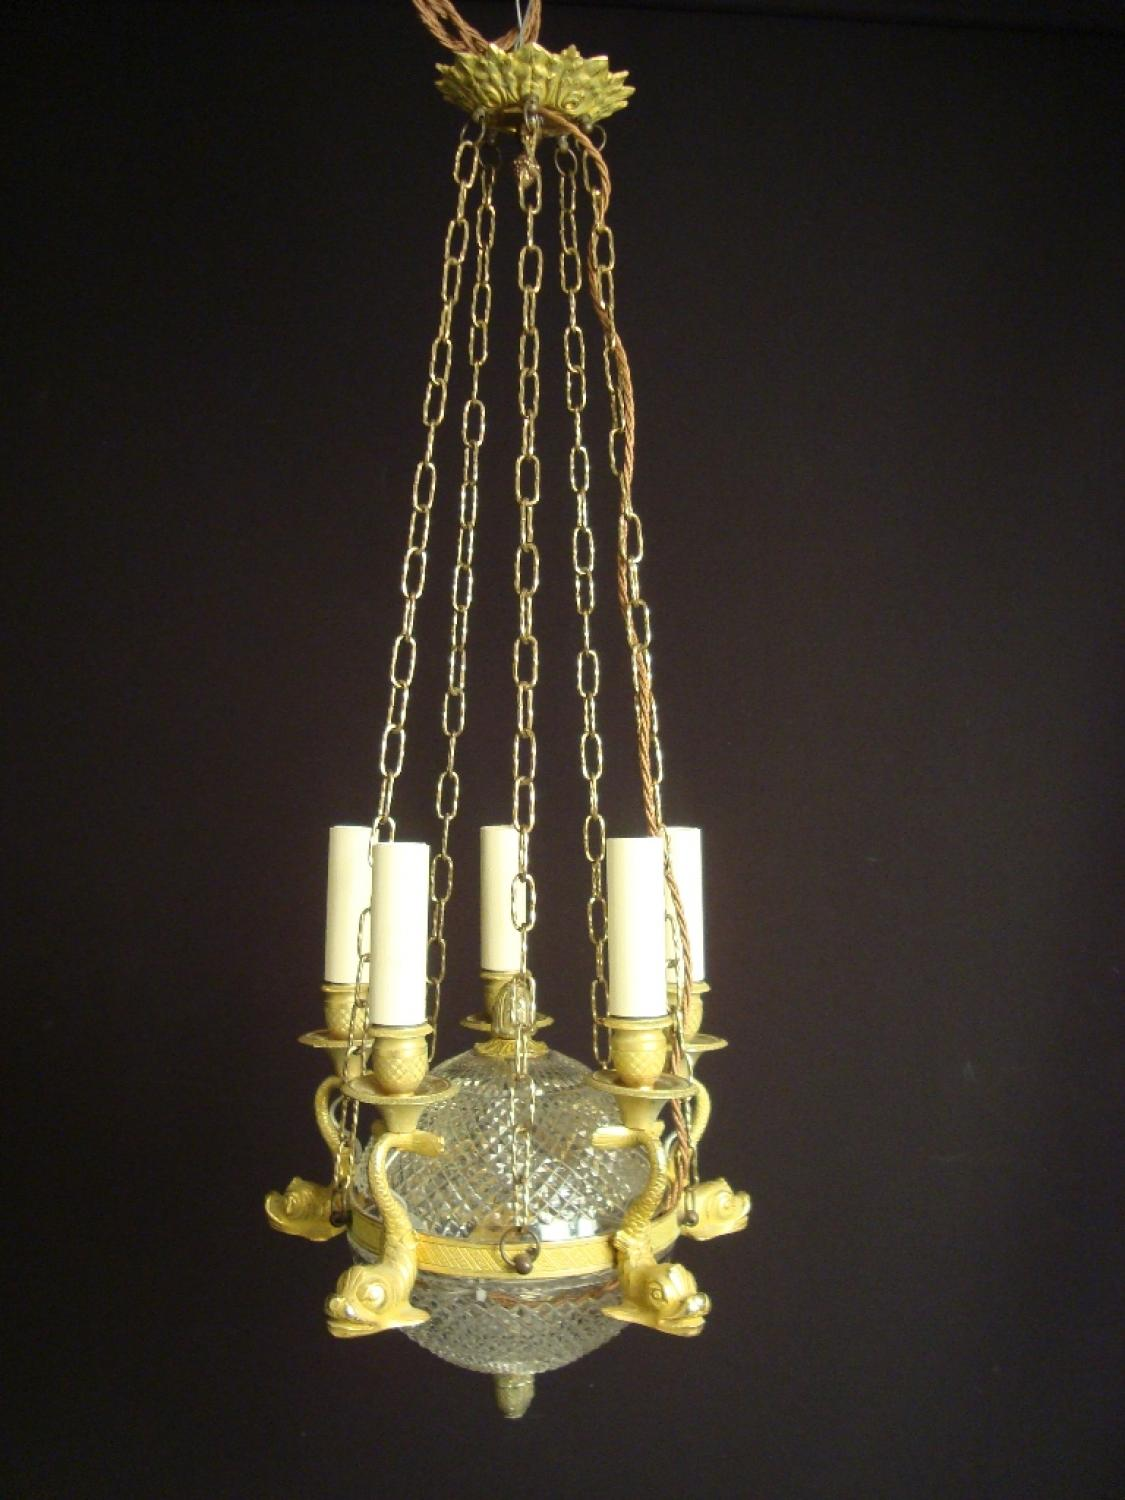 An unusual empire revival style chandelier